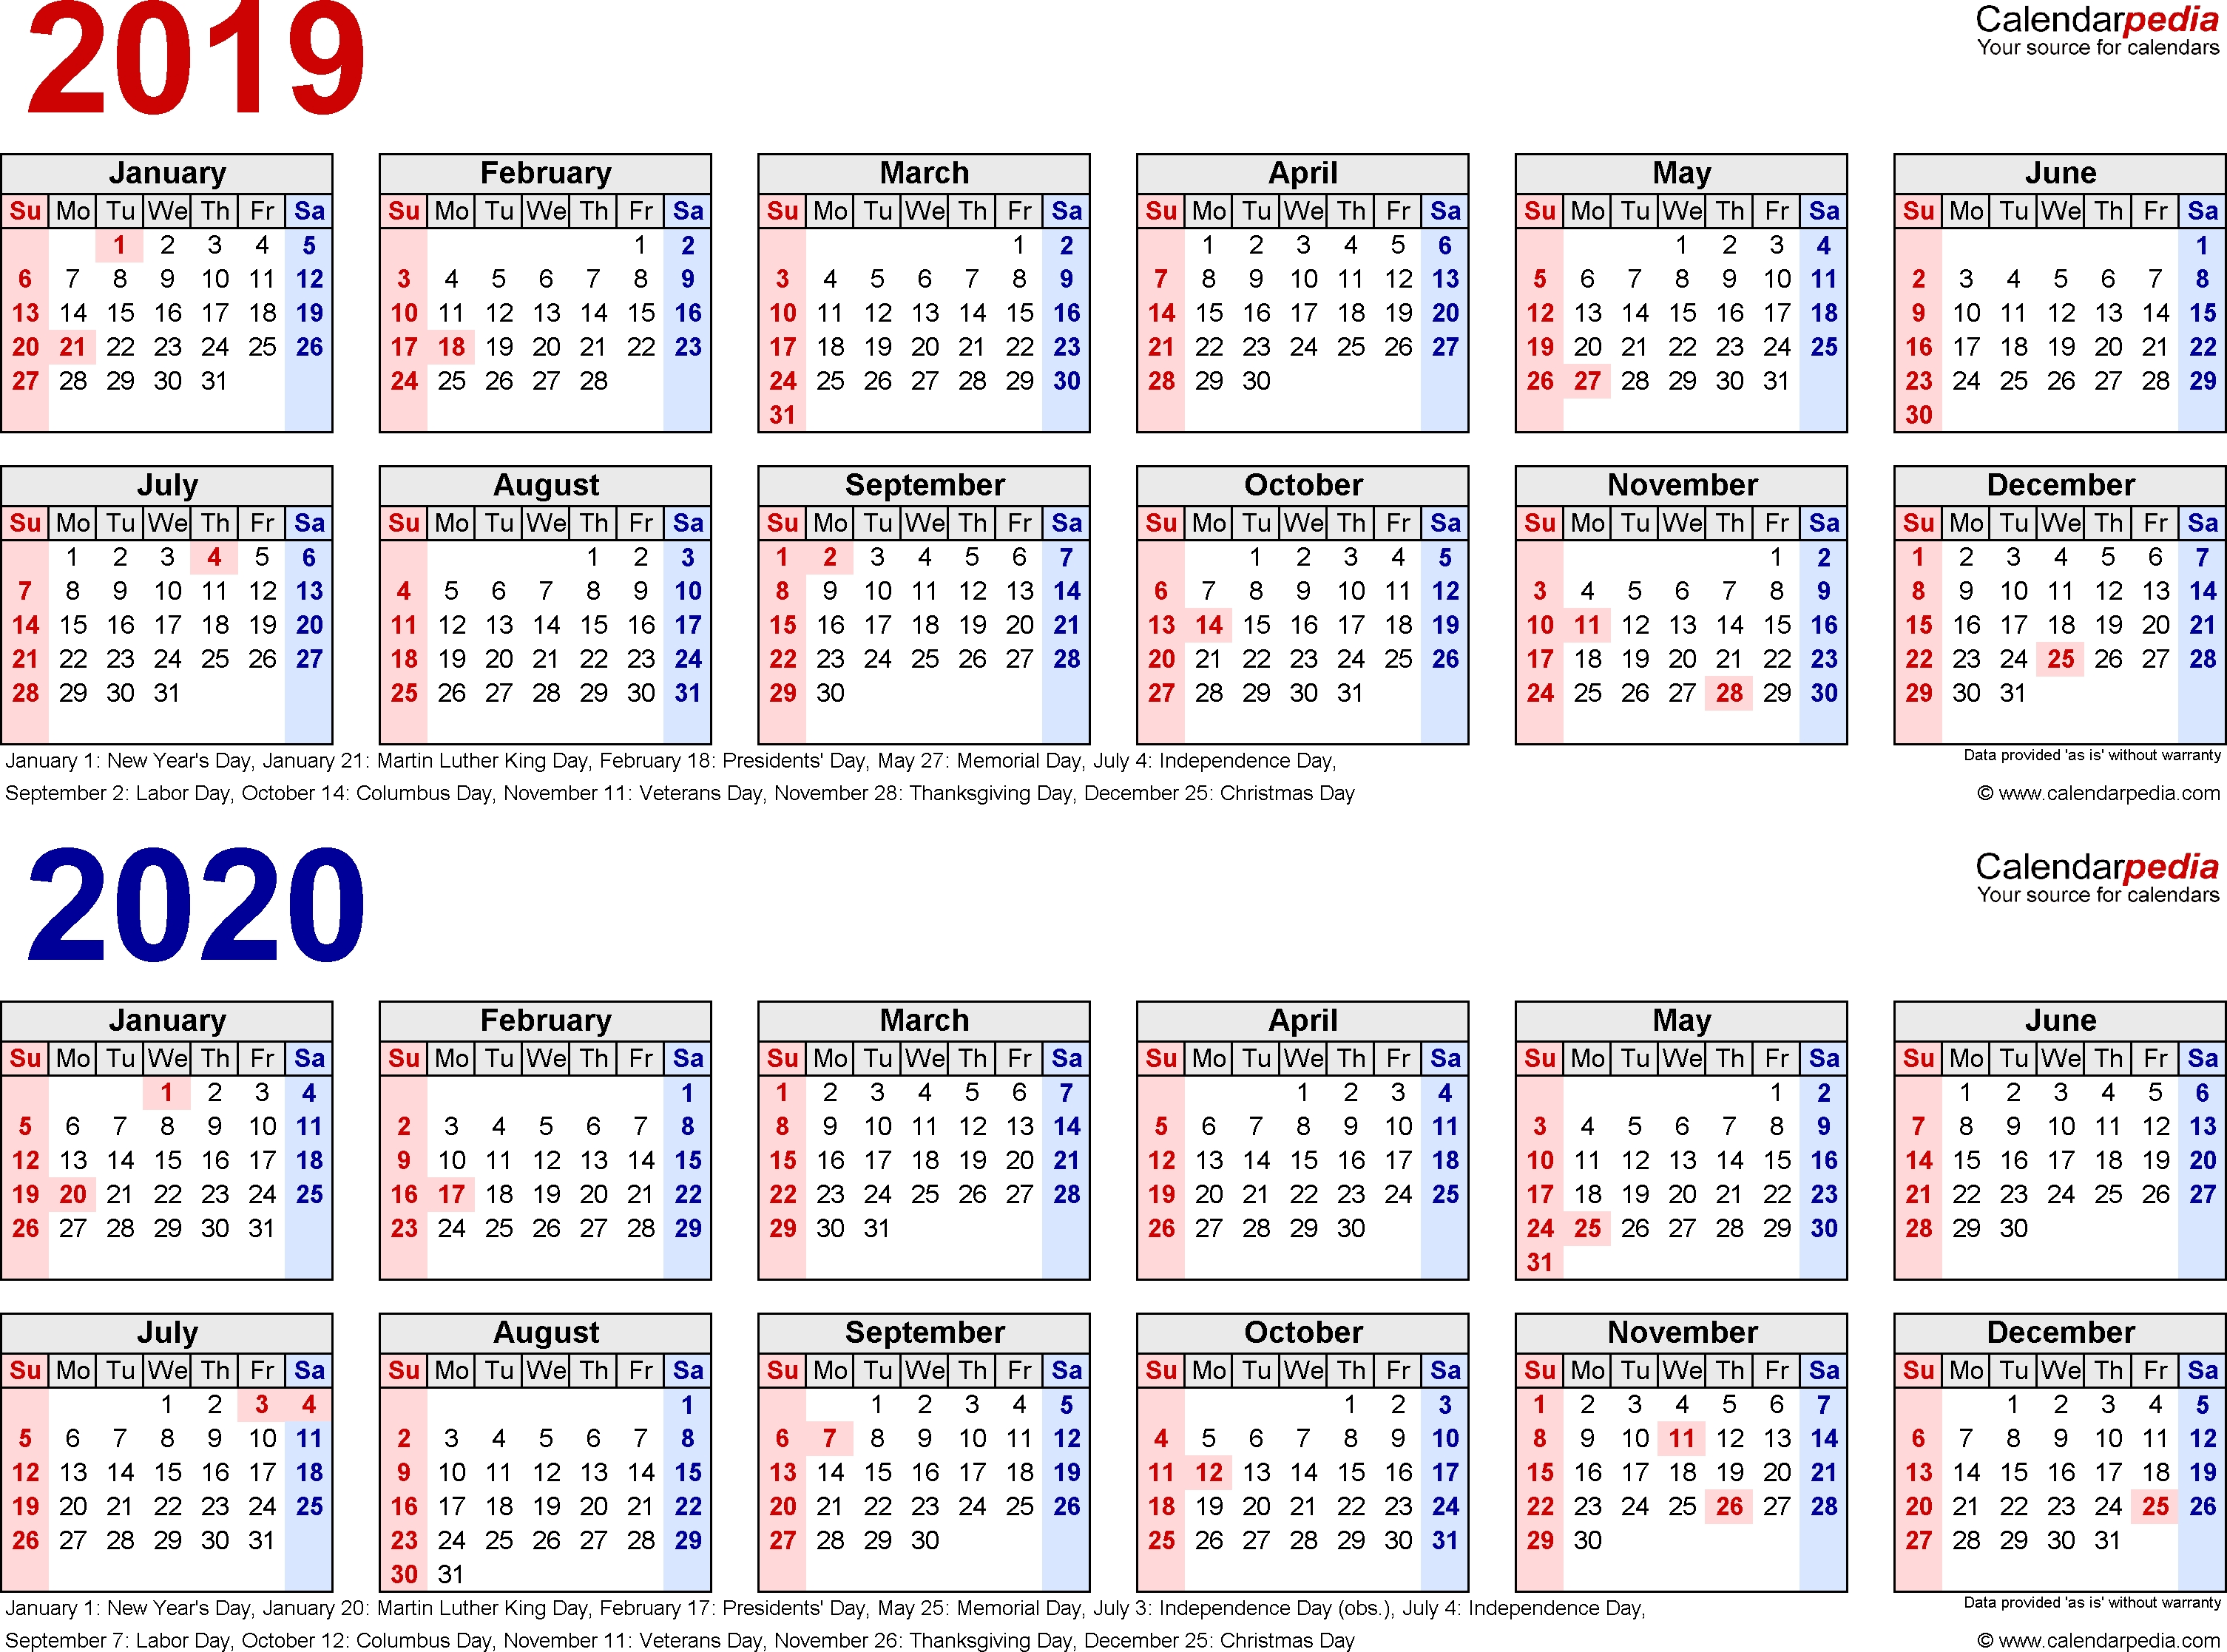 2019-2020 Calendar - Free Printable Two-Year Excel Calendars within U Of T 2019 2020 Calendar